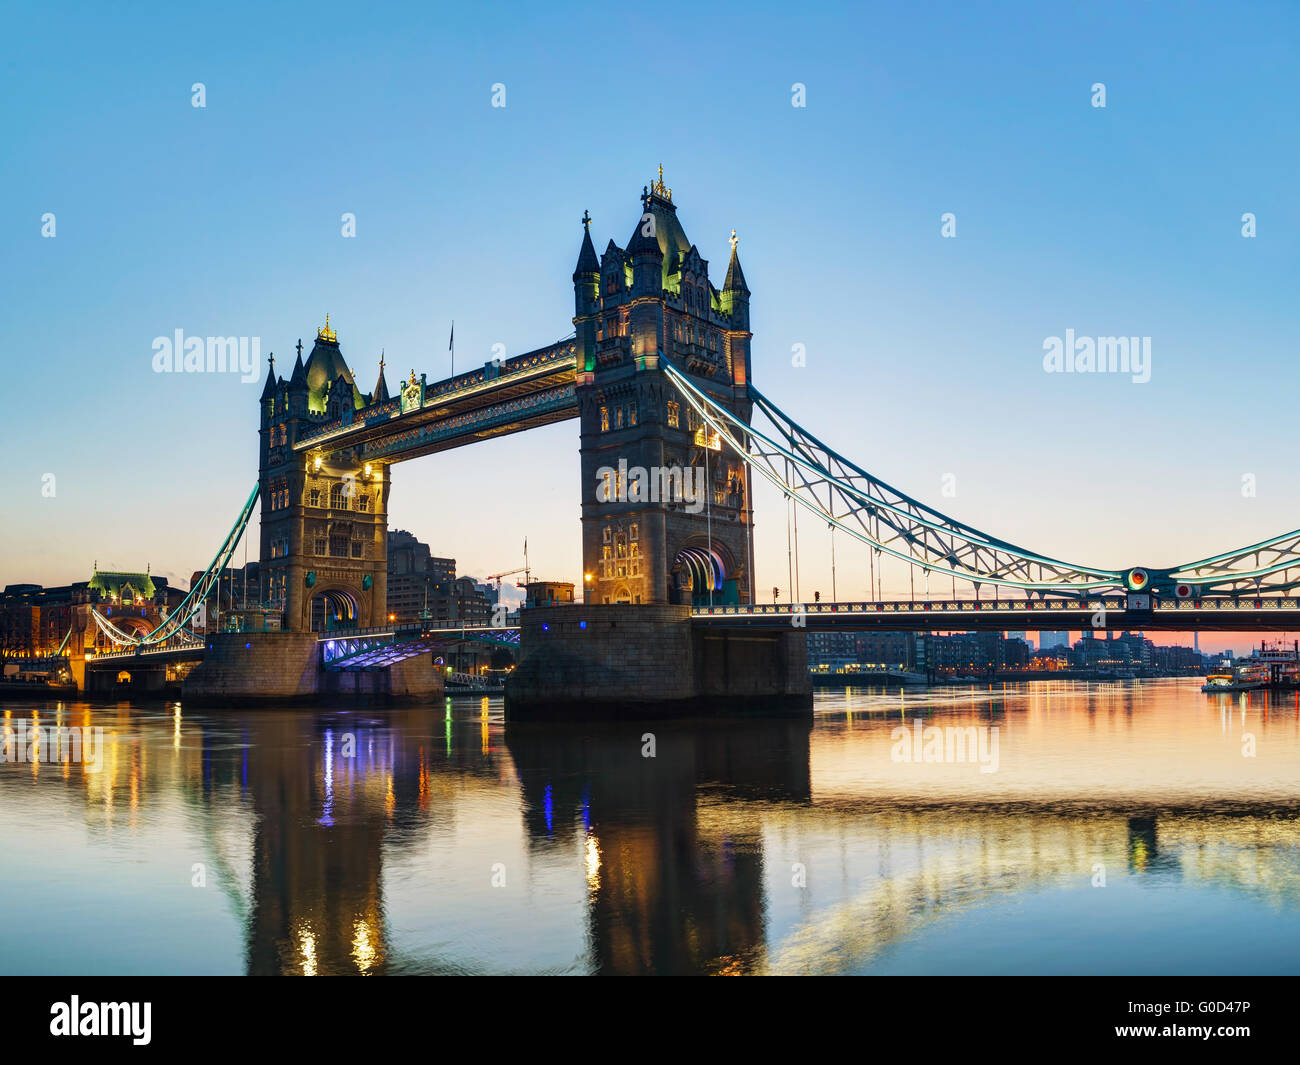 Tower bridge in London, Great Britain at sunrise - Stock Image